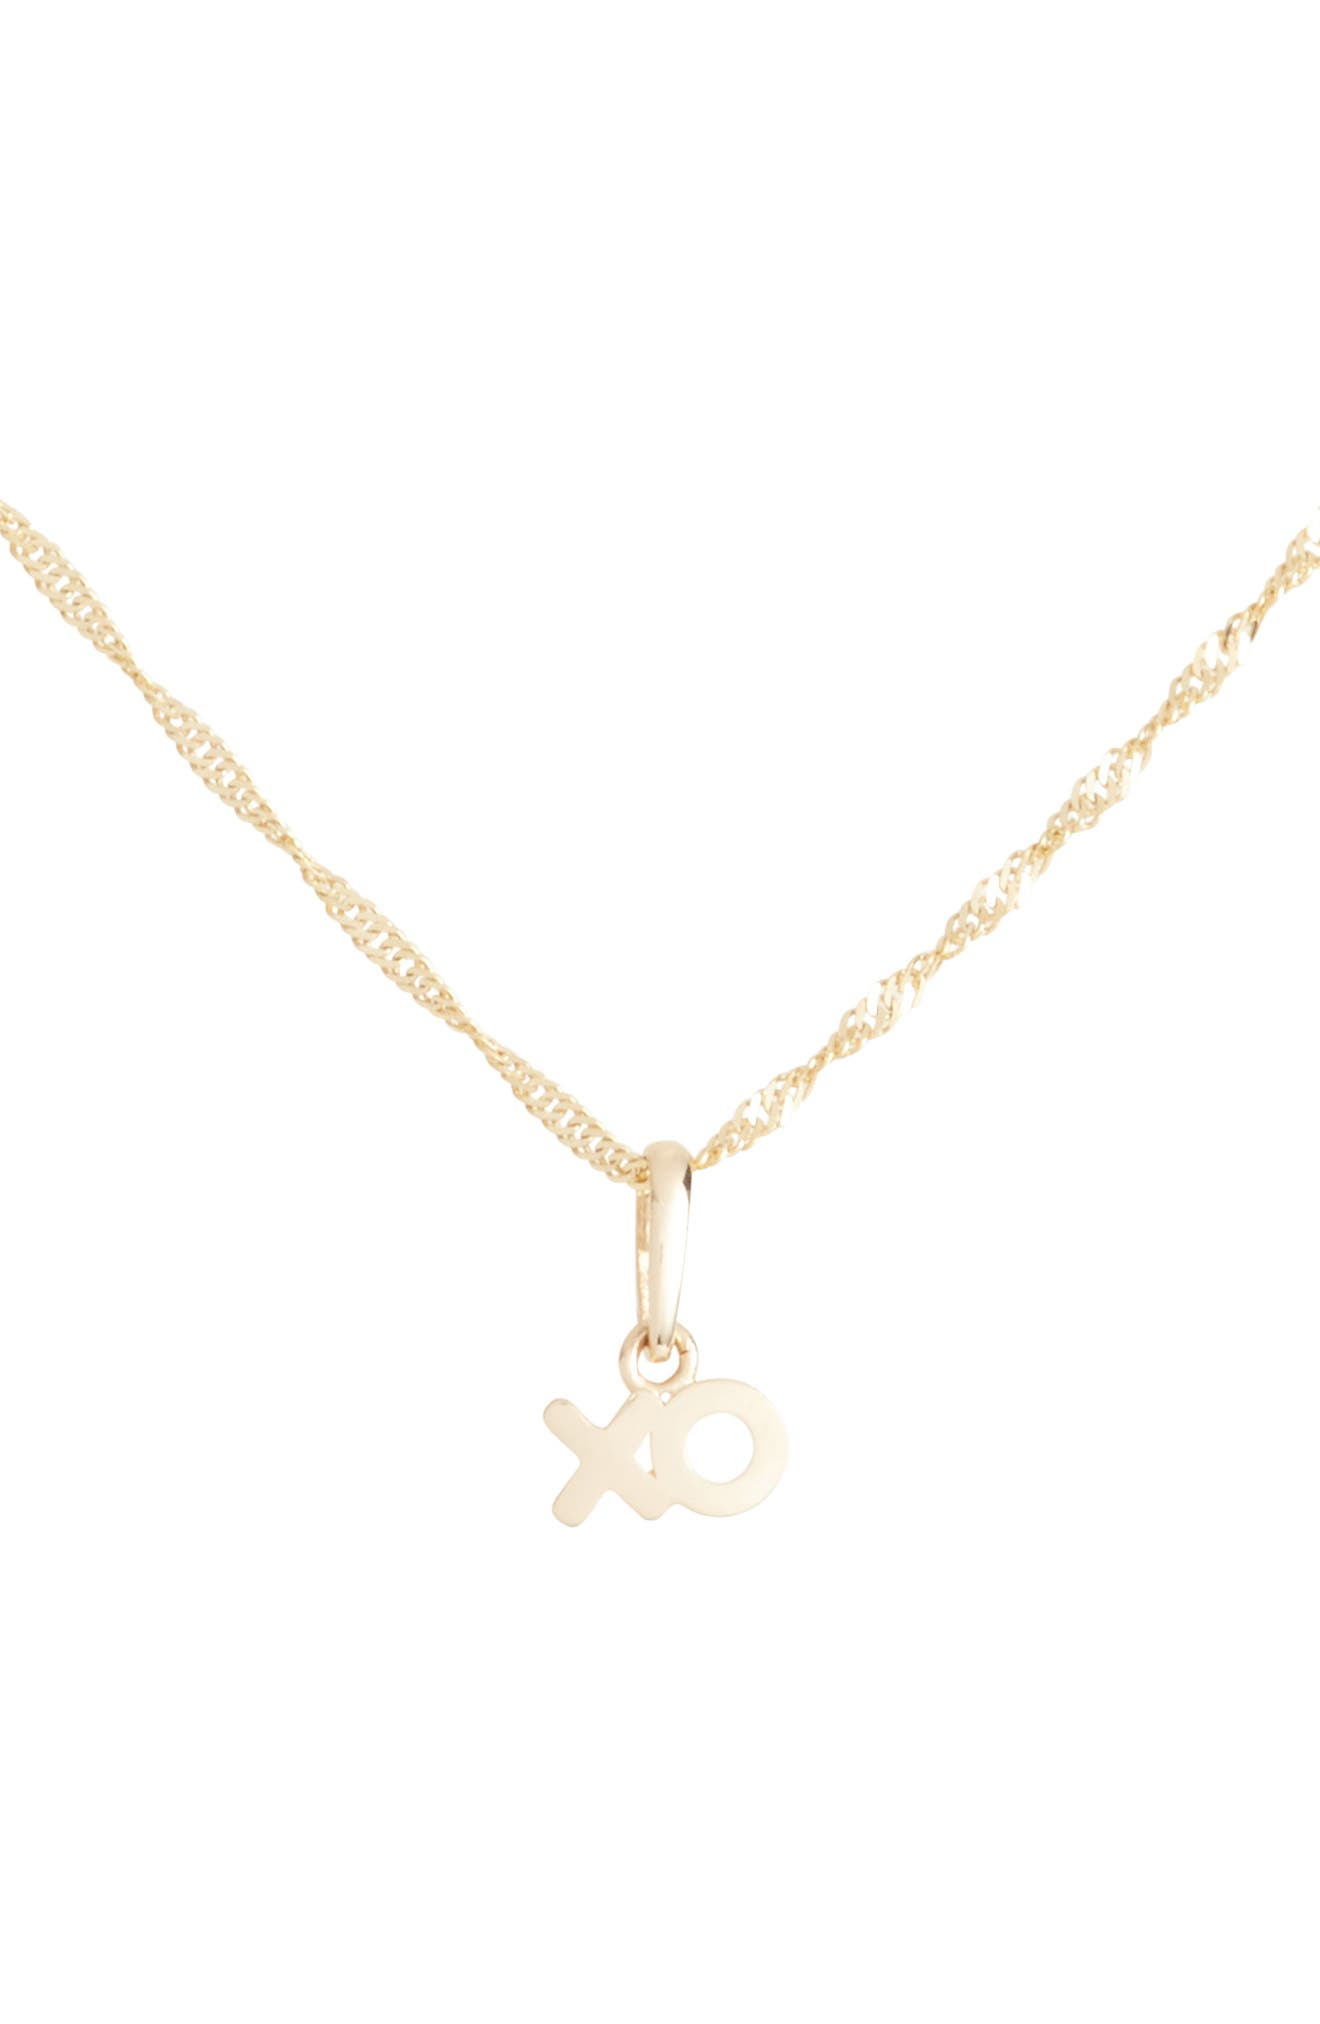 XO Charm Short Pendant Necklace,                             Main thumbnail 1, color,                             YELLOW GOLD